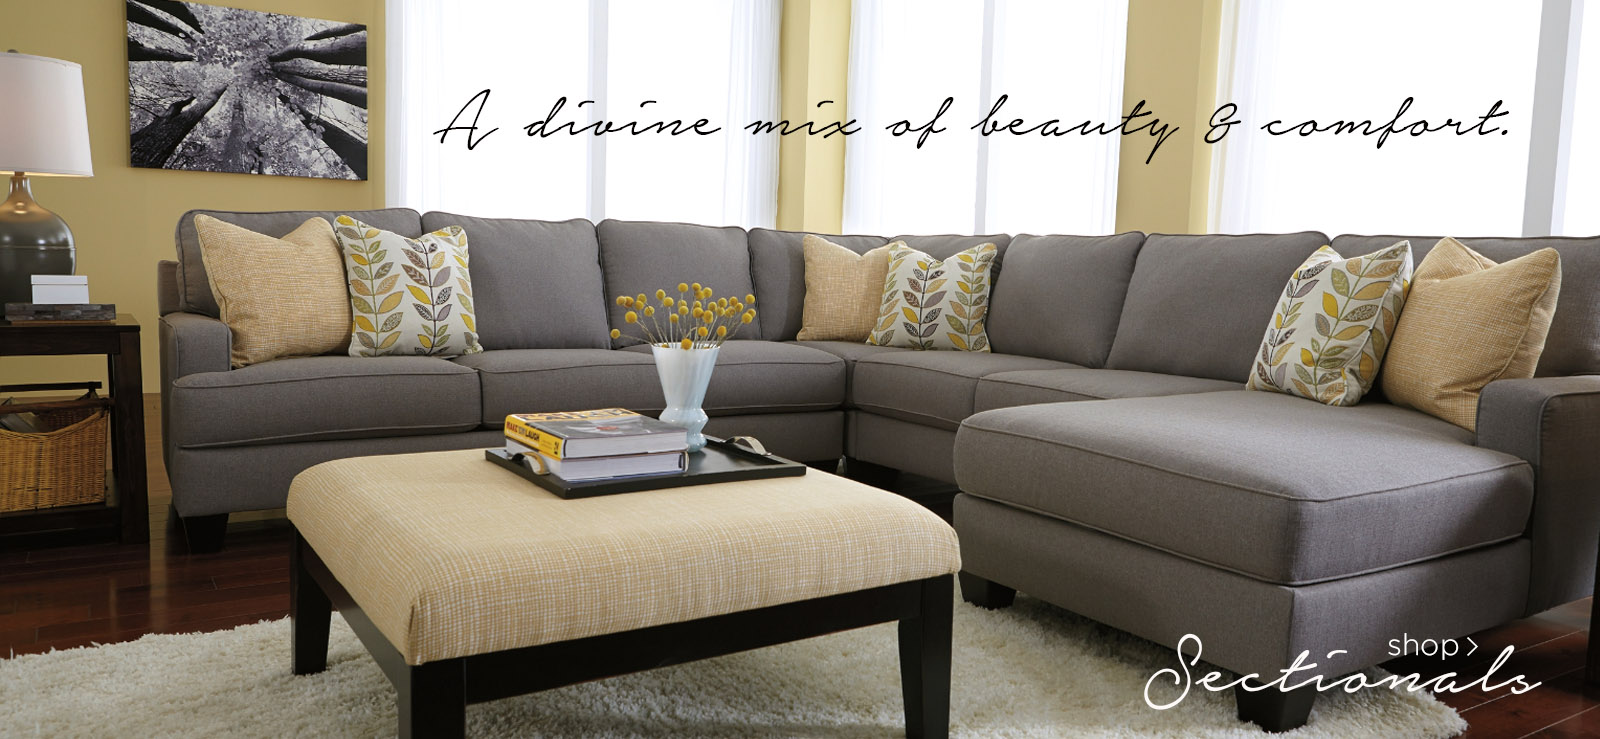 contemporary living room furniture shop sectionals shop sectionals LEYTMZC